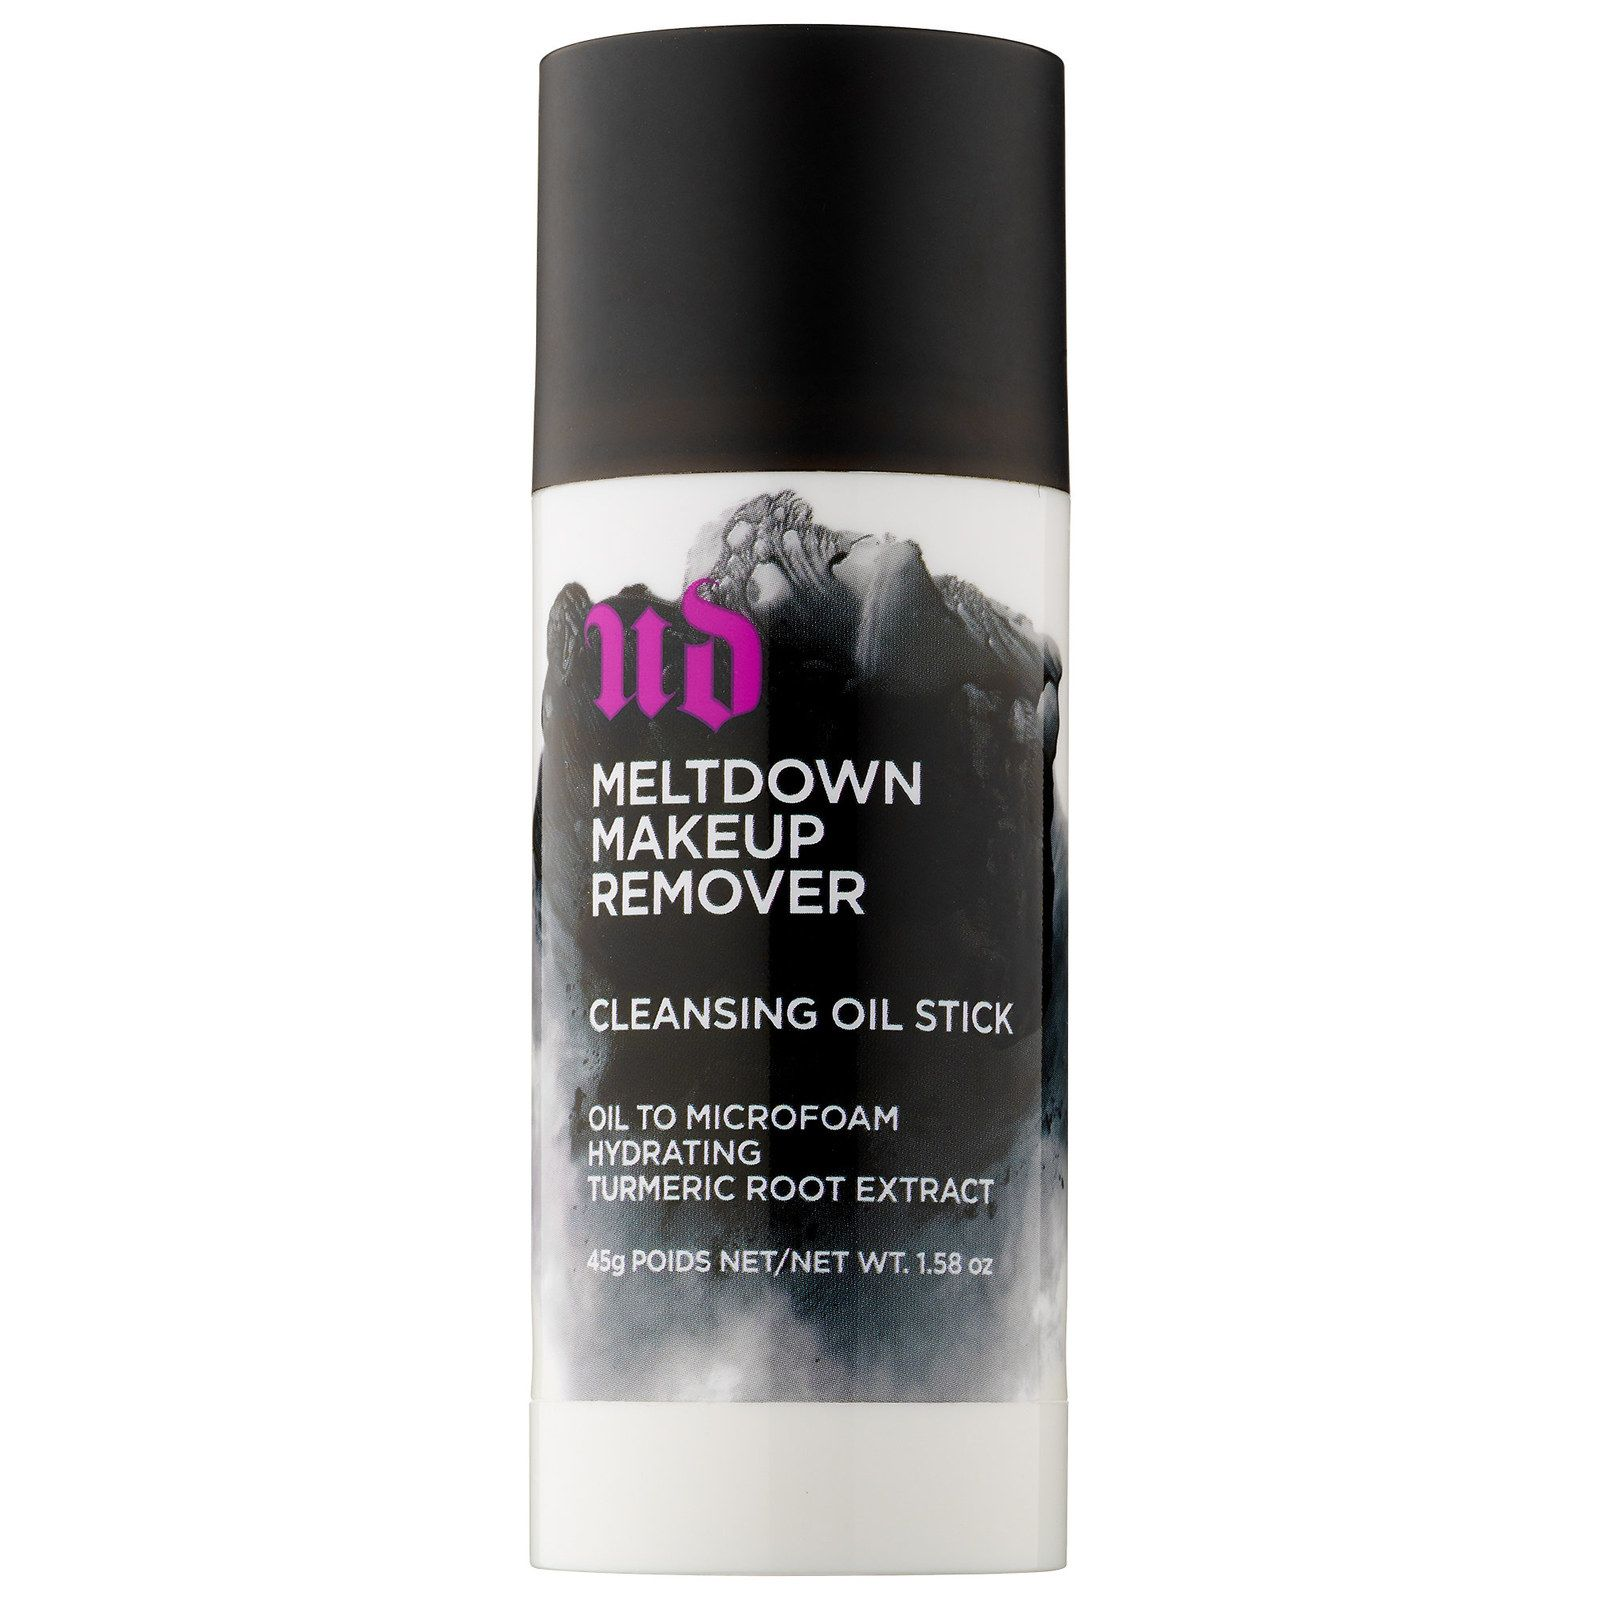 Makeup Finds for Halloween And Beyond Makeup remover